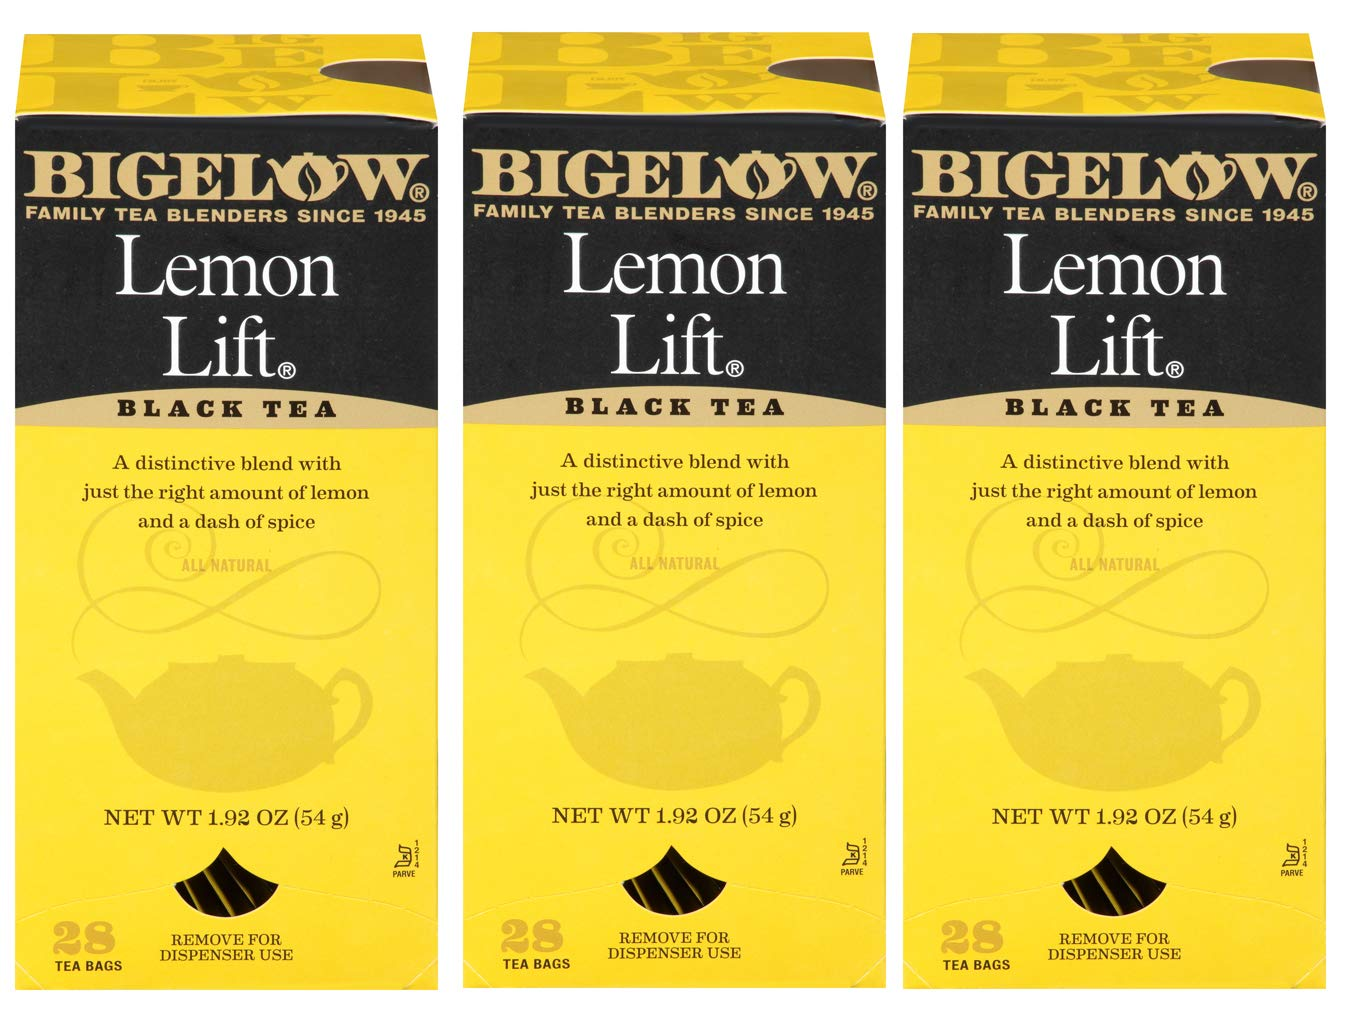 Bigelow Lemon Lift Black Tea Bags 28-Count Box (Pack of 3) Lemon Flavored Black Tea Naturally & Artificially Flavored